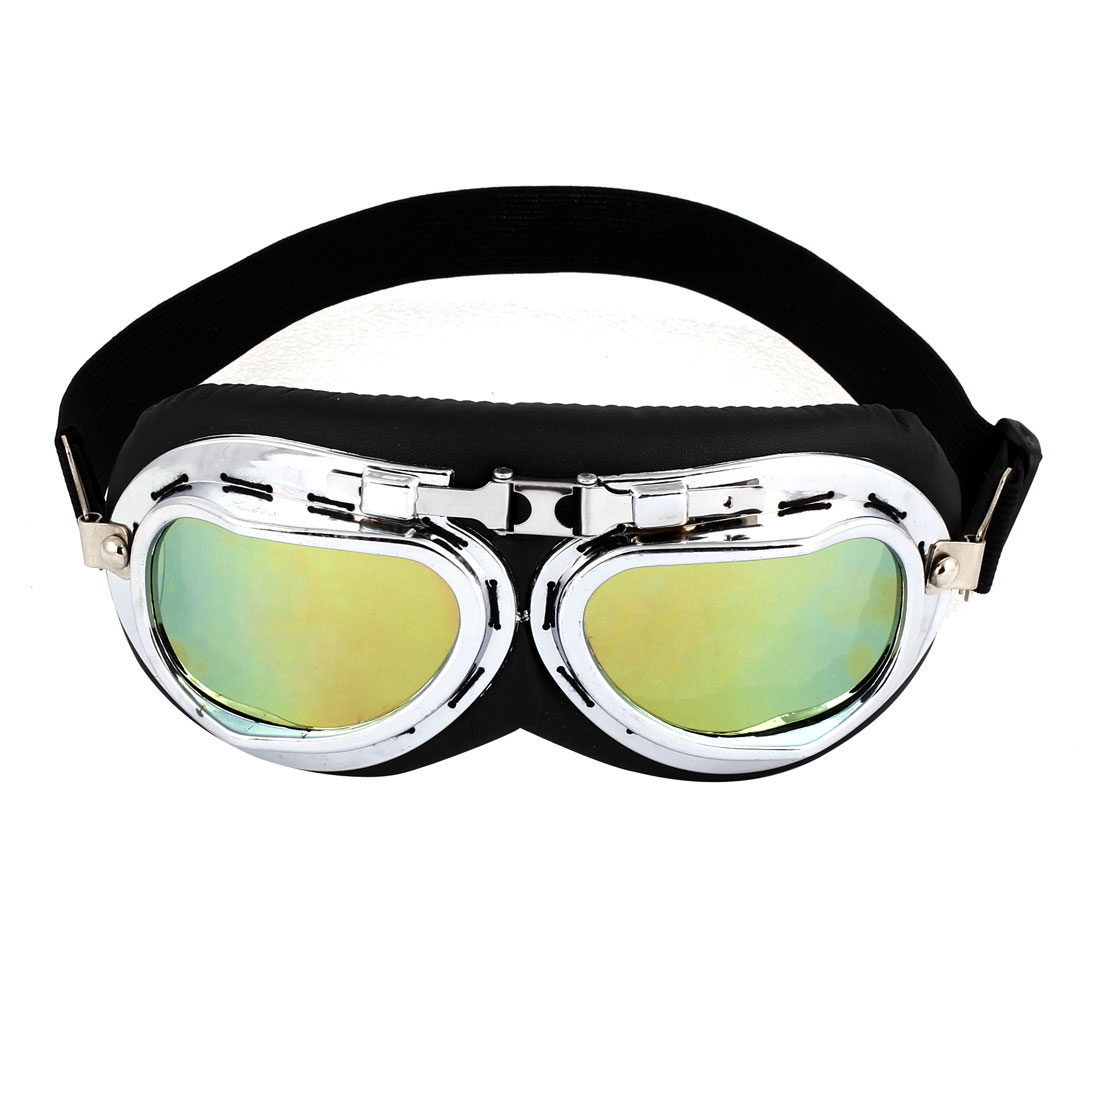 Motorcycle Motorbike Driving Colored Lens Full Frame Goggles Glasses Eyewear